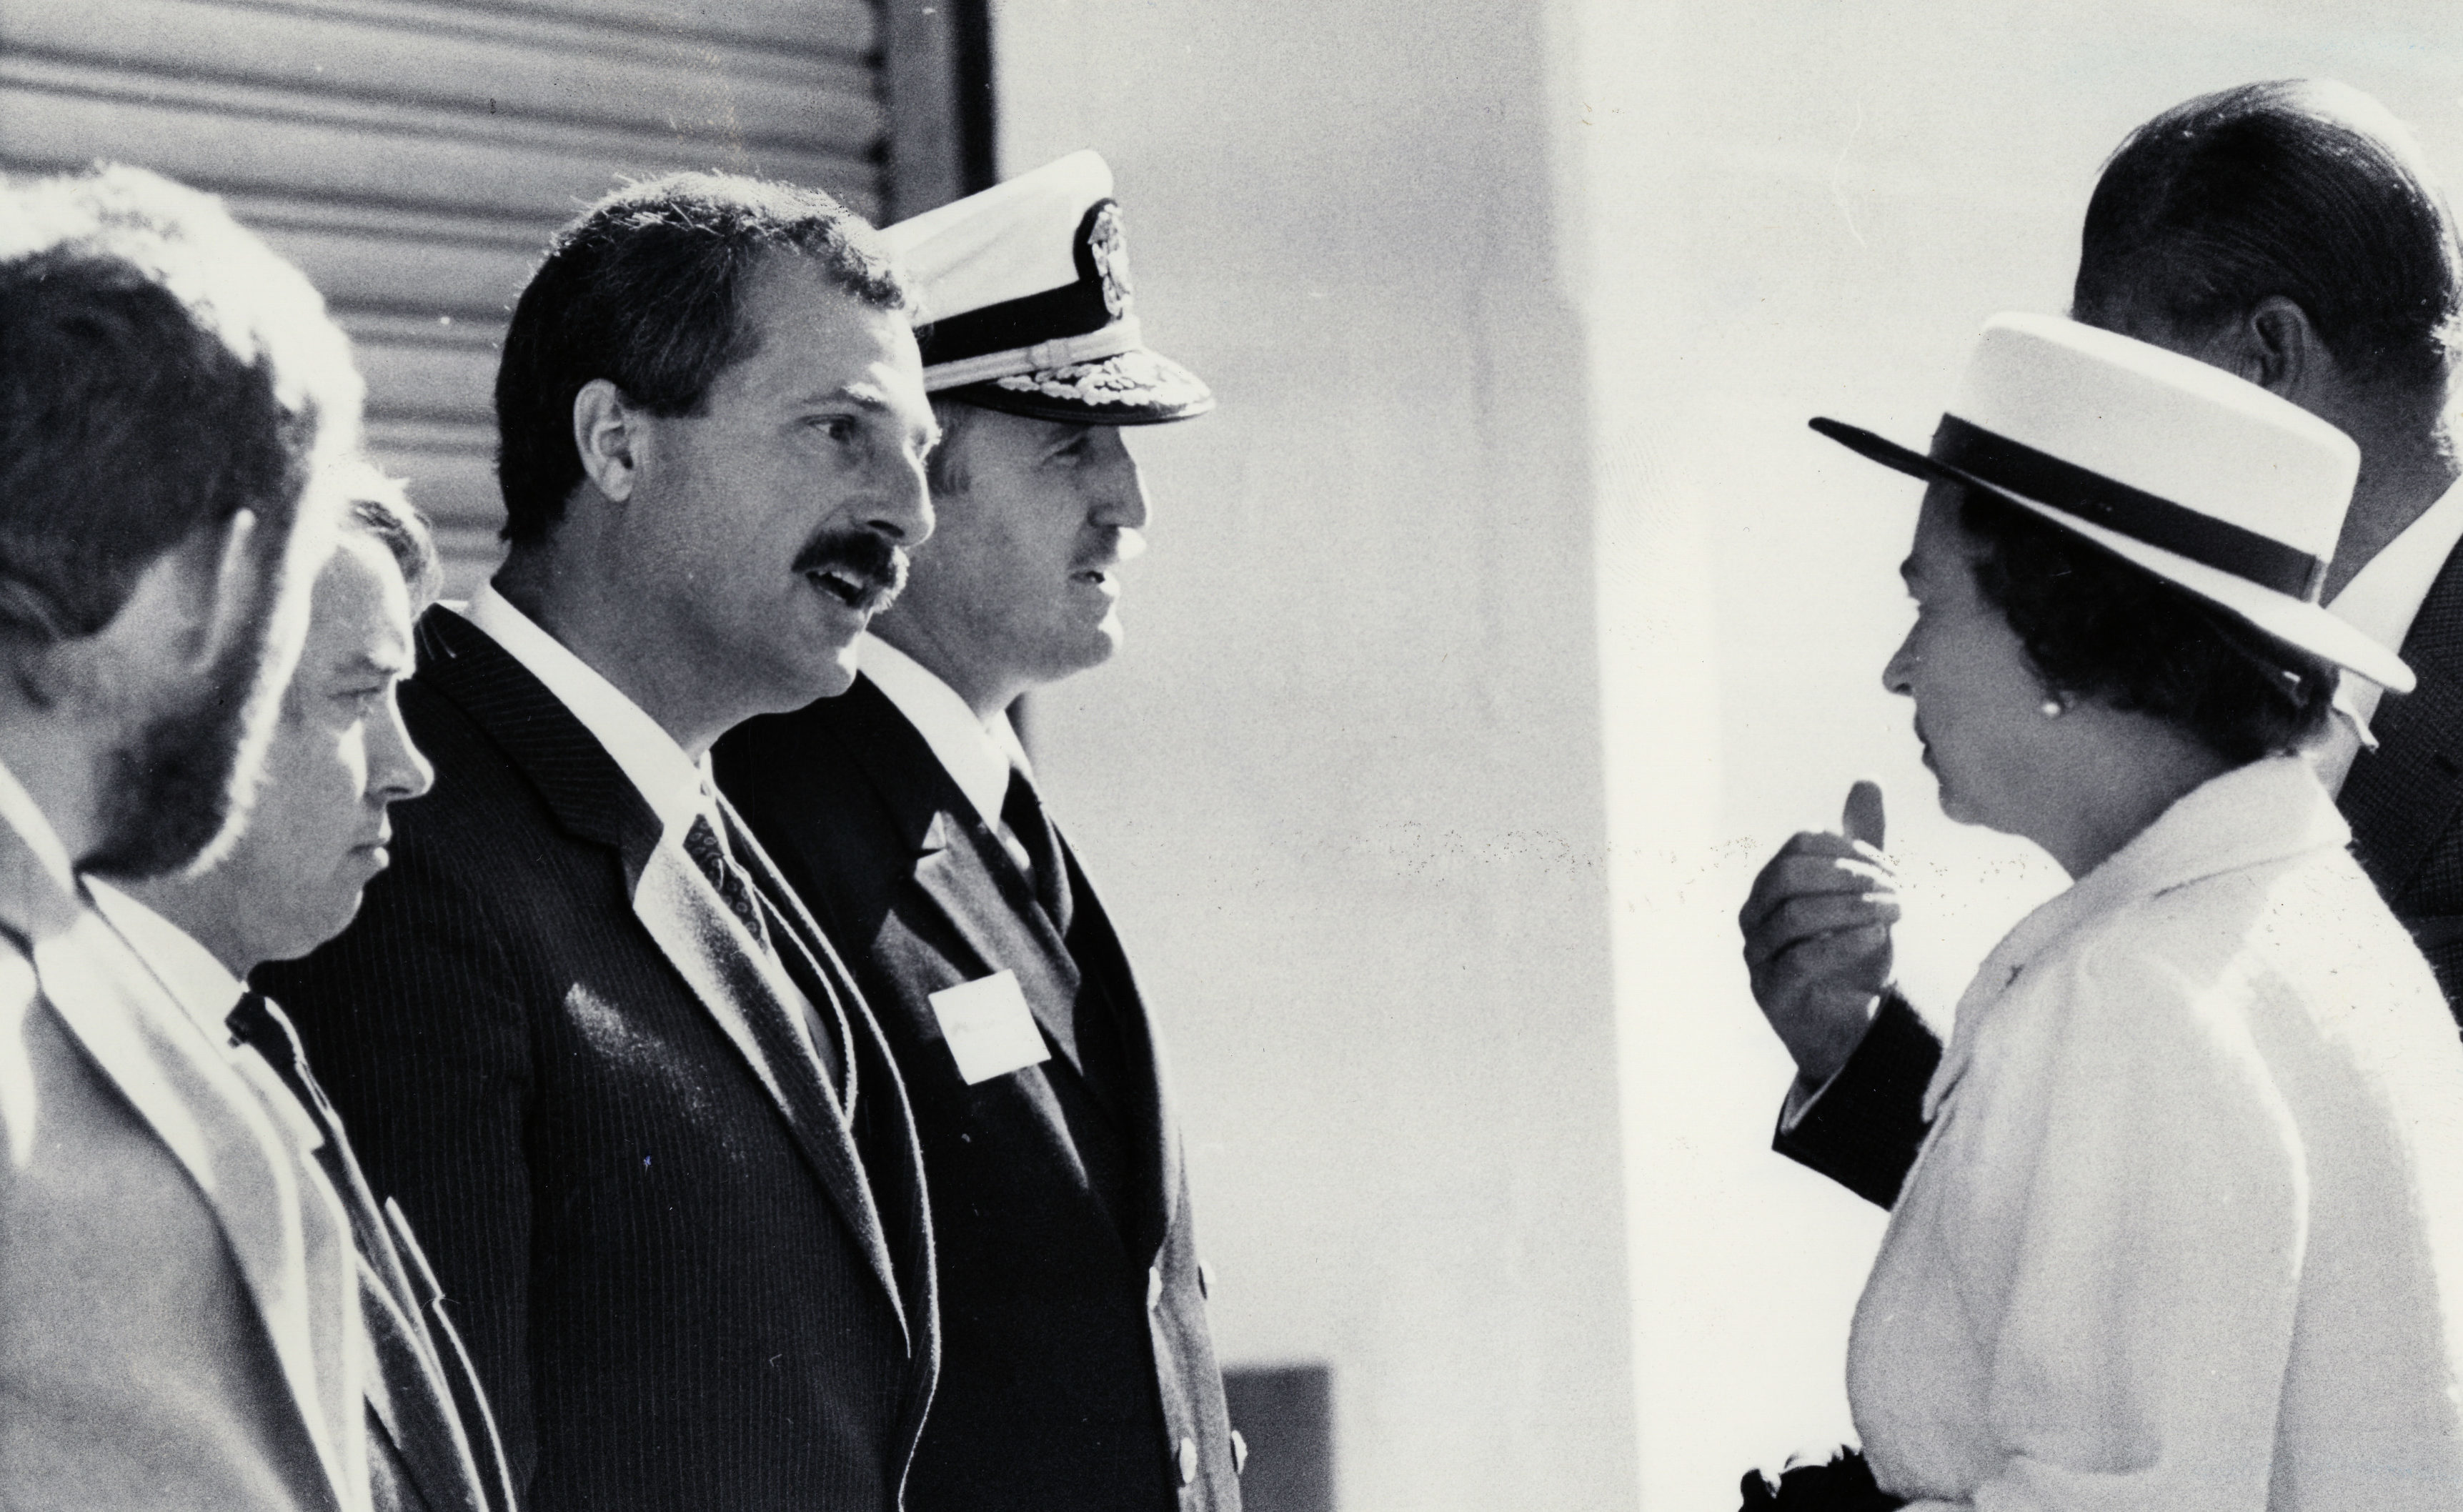 The Queen meeting Iain Letham, Capt Alistair Letty, Stanley MacLeod and Admiral John Redd, four men who had a key role in the Piper Alpha rescue operation, in Aberdeen on August 15 1988.